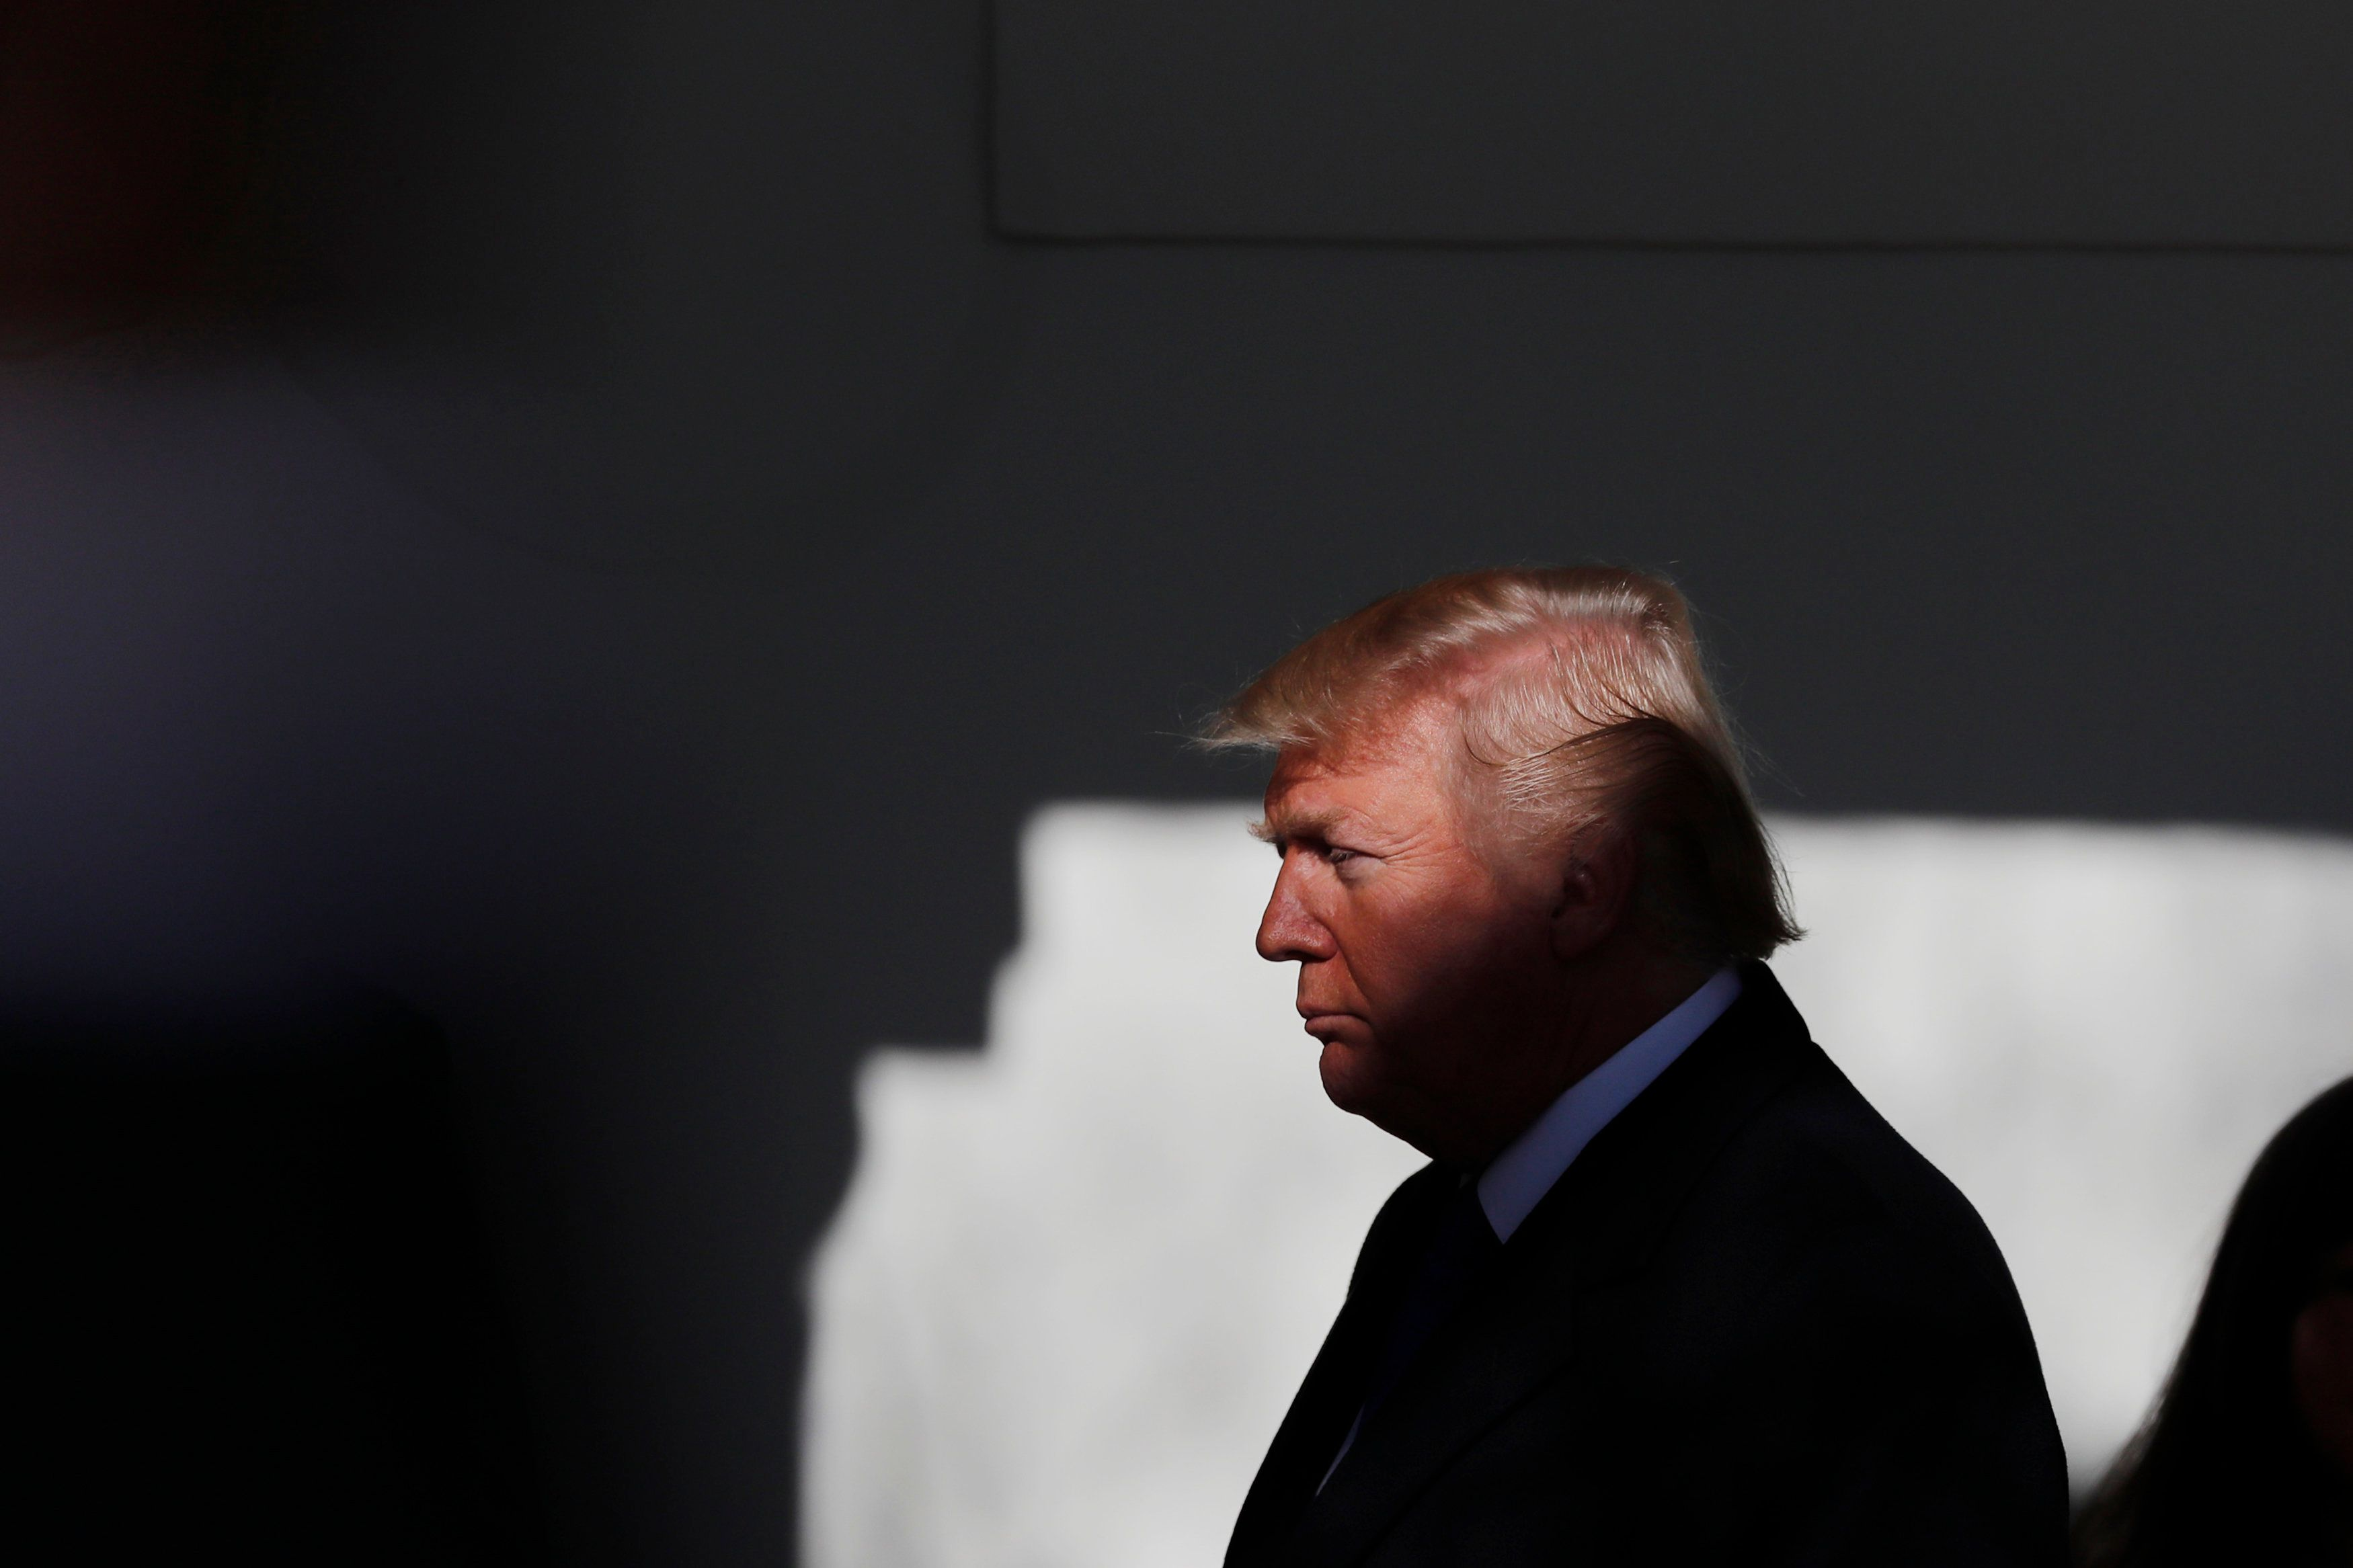 U.S. President Donald Trump prepares to address the annual March for Life rally, taking place on the nearby National Mall, from the White House Rose Garden in Washington, U.S., January 19, 2018. REUTERS/Carlos Barria